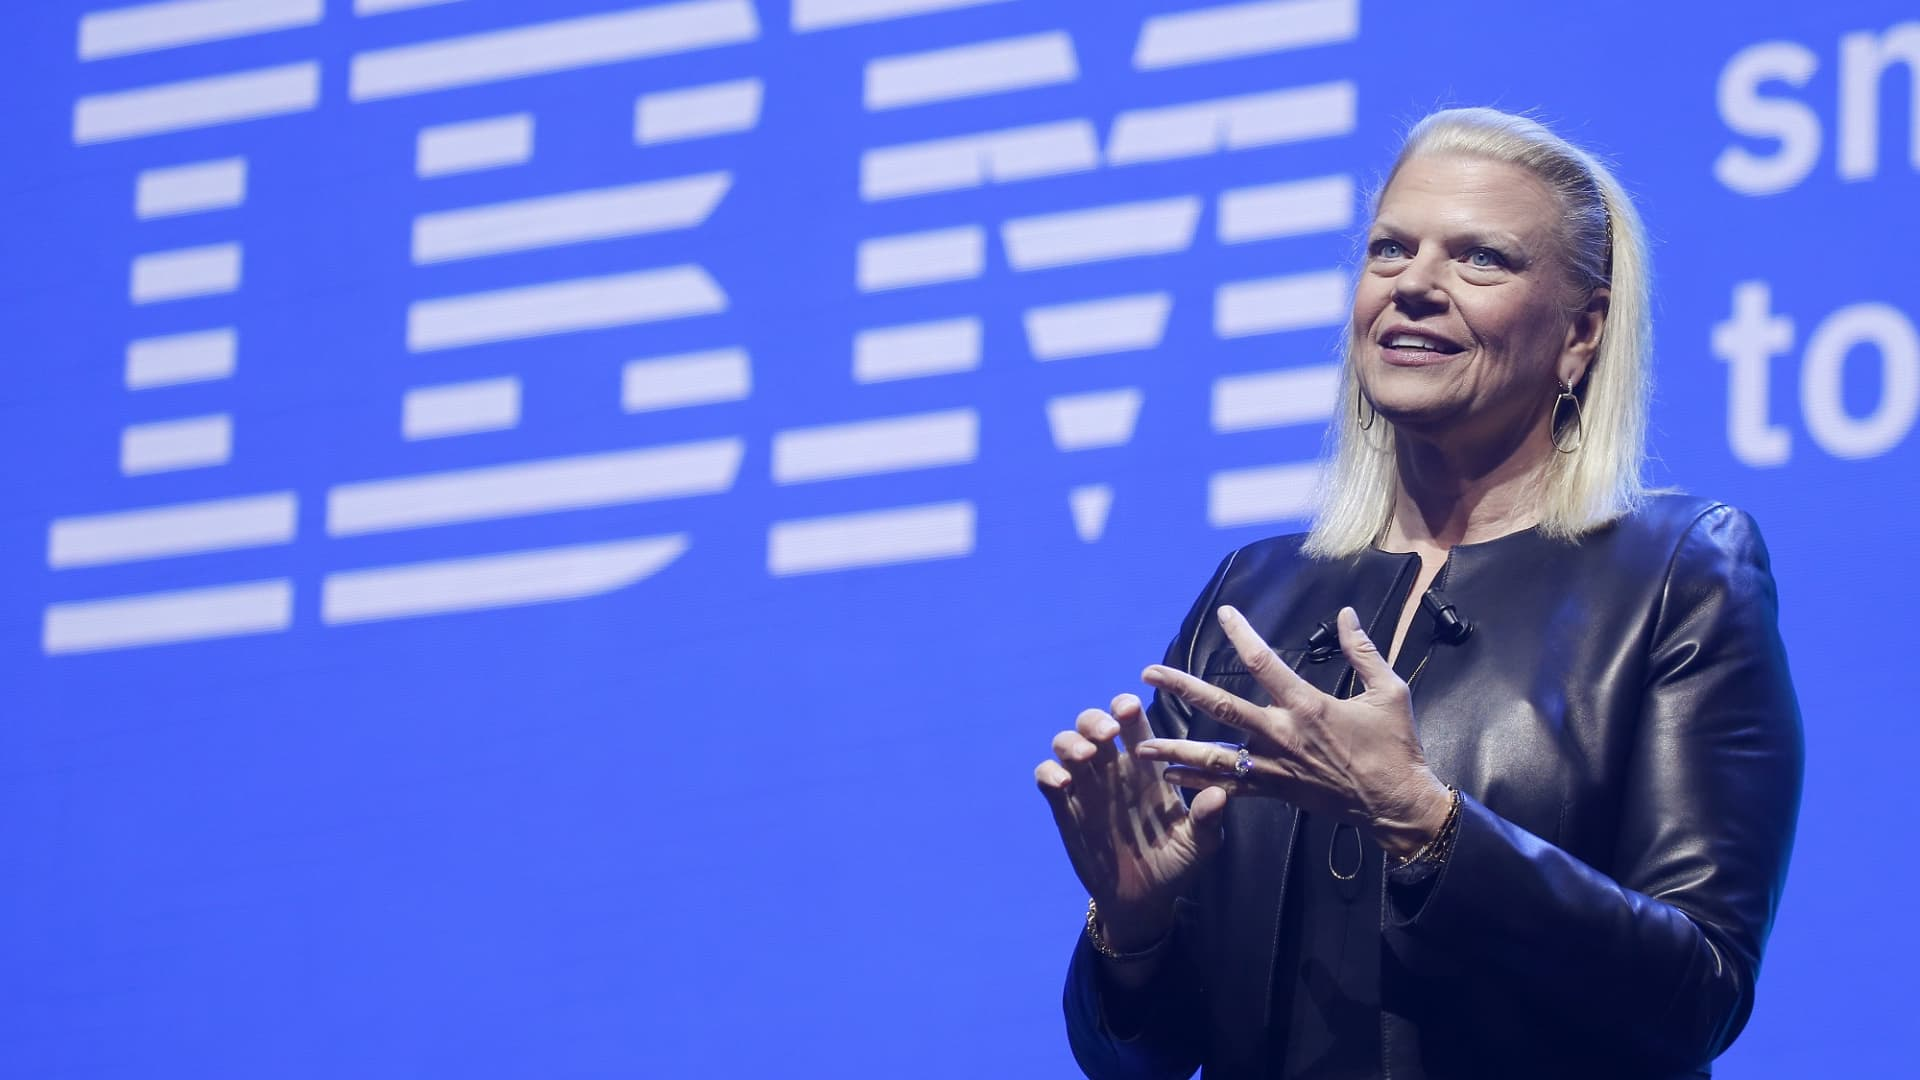 IBM President and CEO Virginia Rometty delivers a speech at a 2019 technology conference in Paris, France.